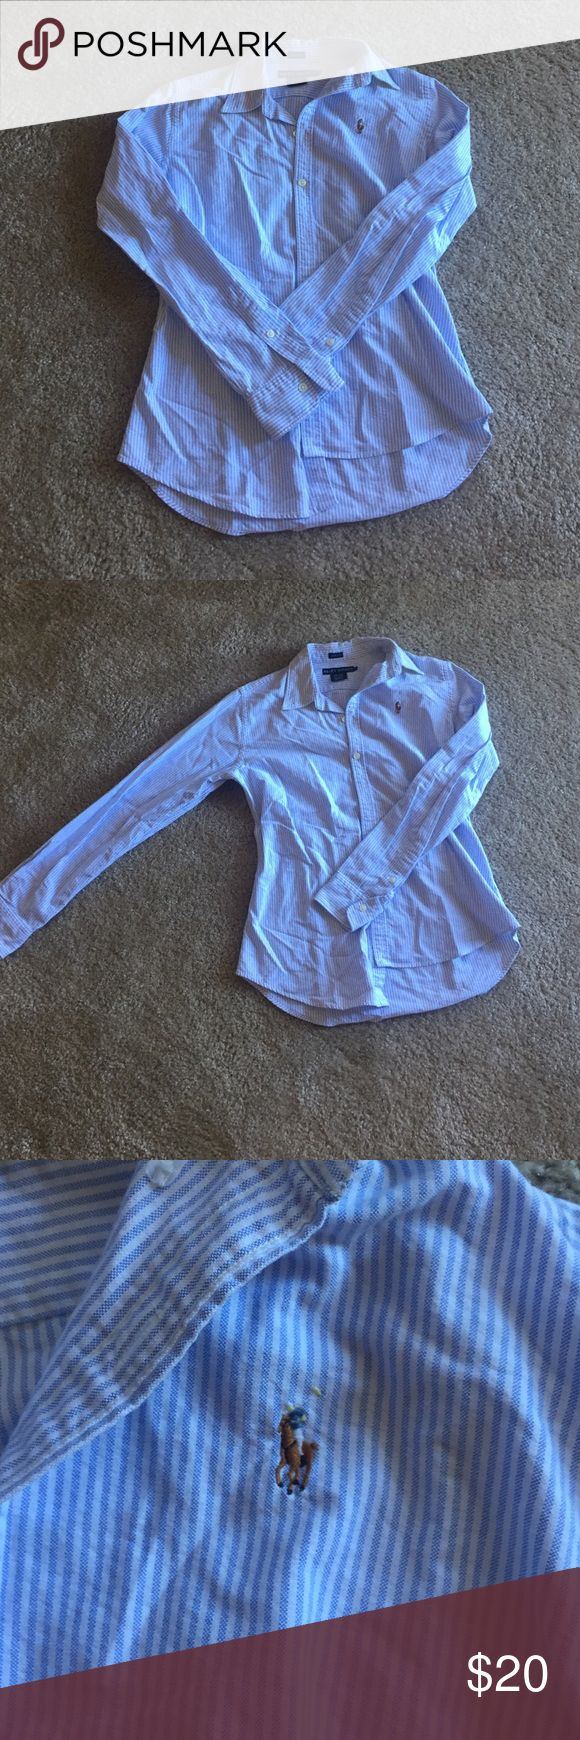 Ralph Lauren Long Sleeved Oxford. Slim Fit size 8 Women's Ralph Lauren long sleeved Oxford shirt. White and pale blue pin stripe with yellow under collar. Worn only a few times. Great condition. Ralph Lauren Tops Button Down Shirts